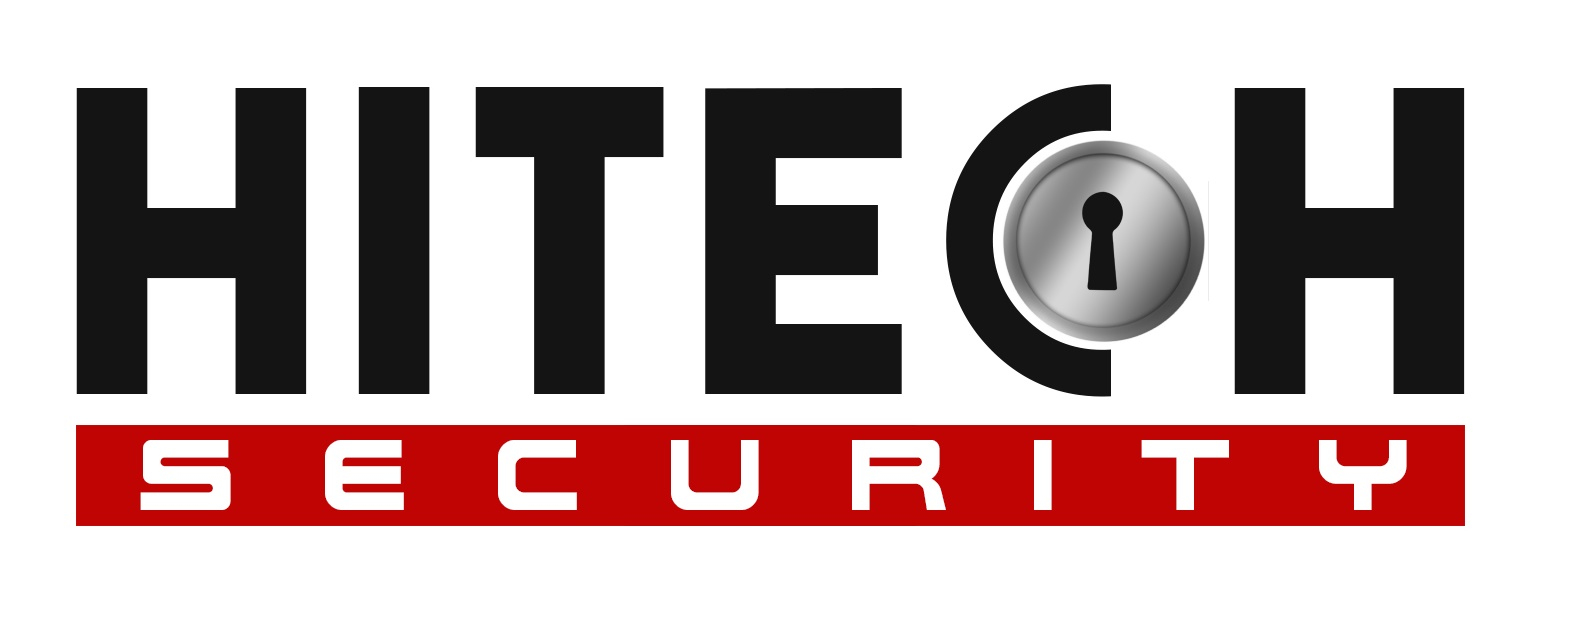 Irvine Security Cameras & CCTV Surveillance Installers